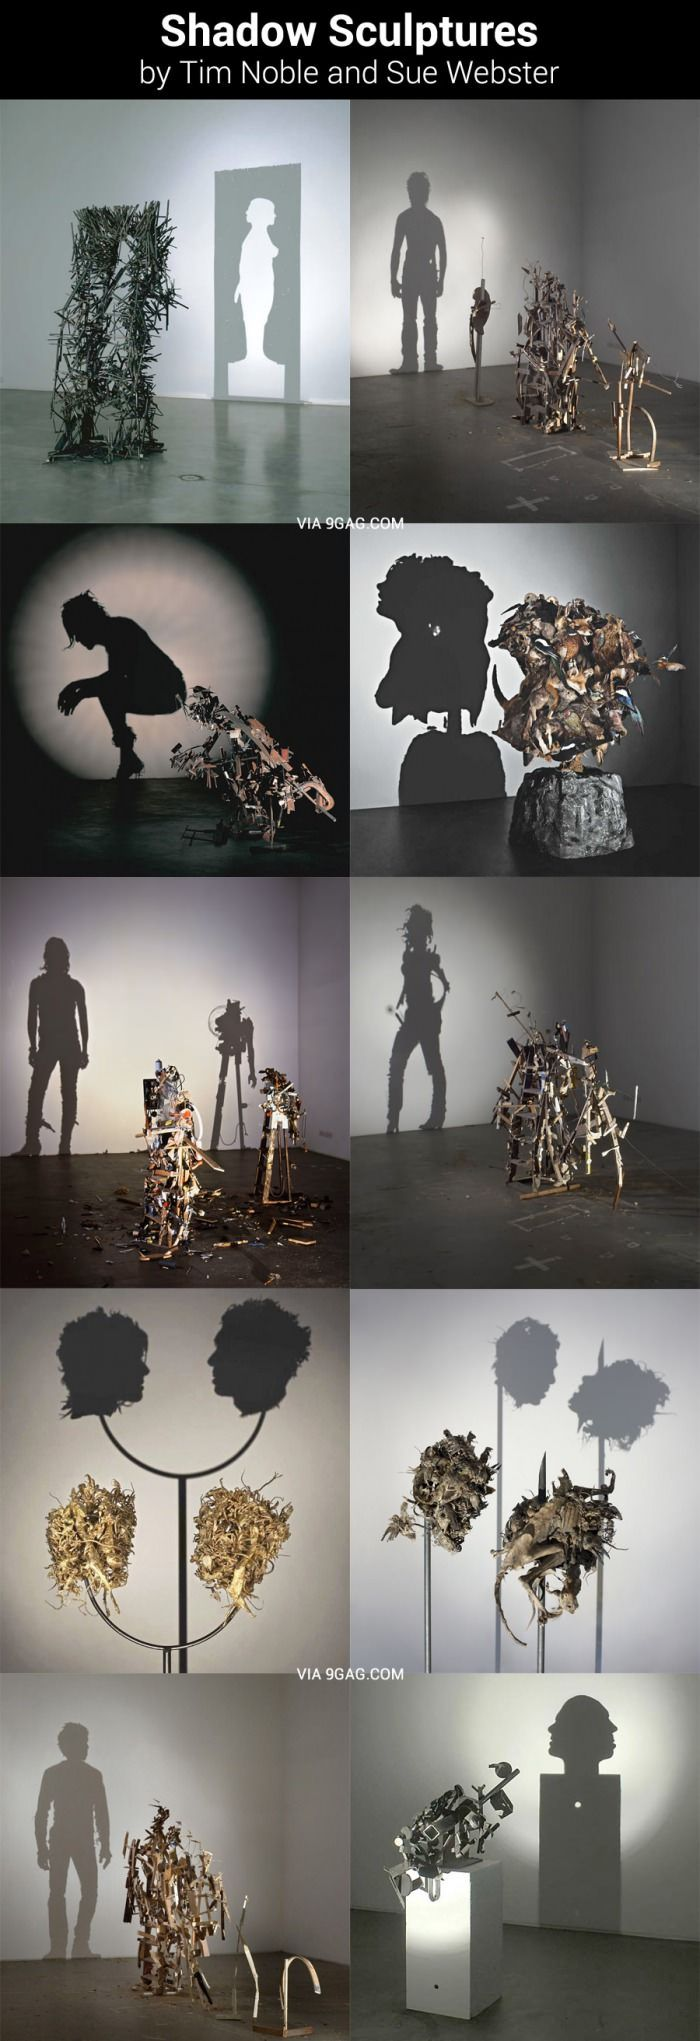 Shadow Sculptures by Tim Noble and Sue Webster - I do like work with a bit of lighting & shadows!